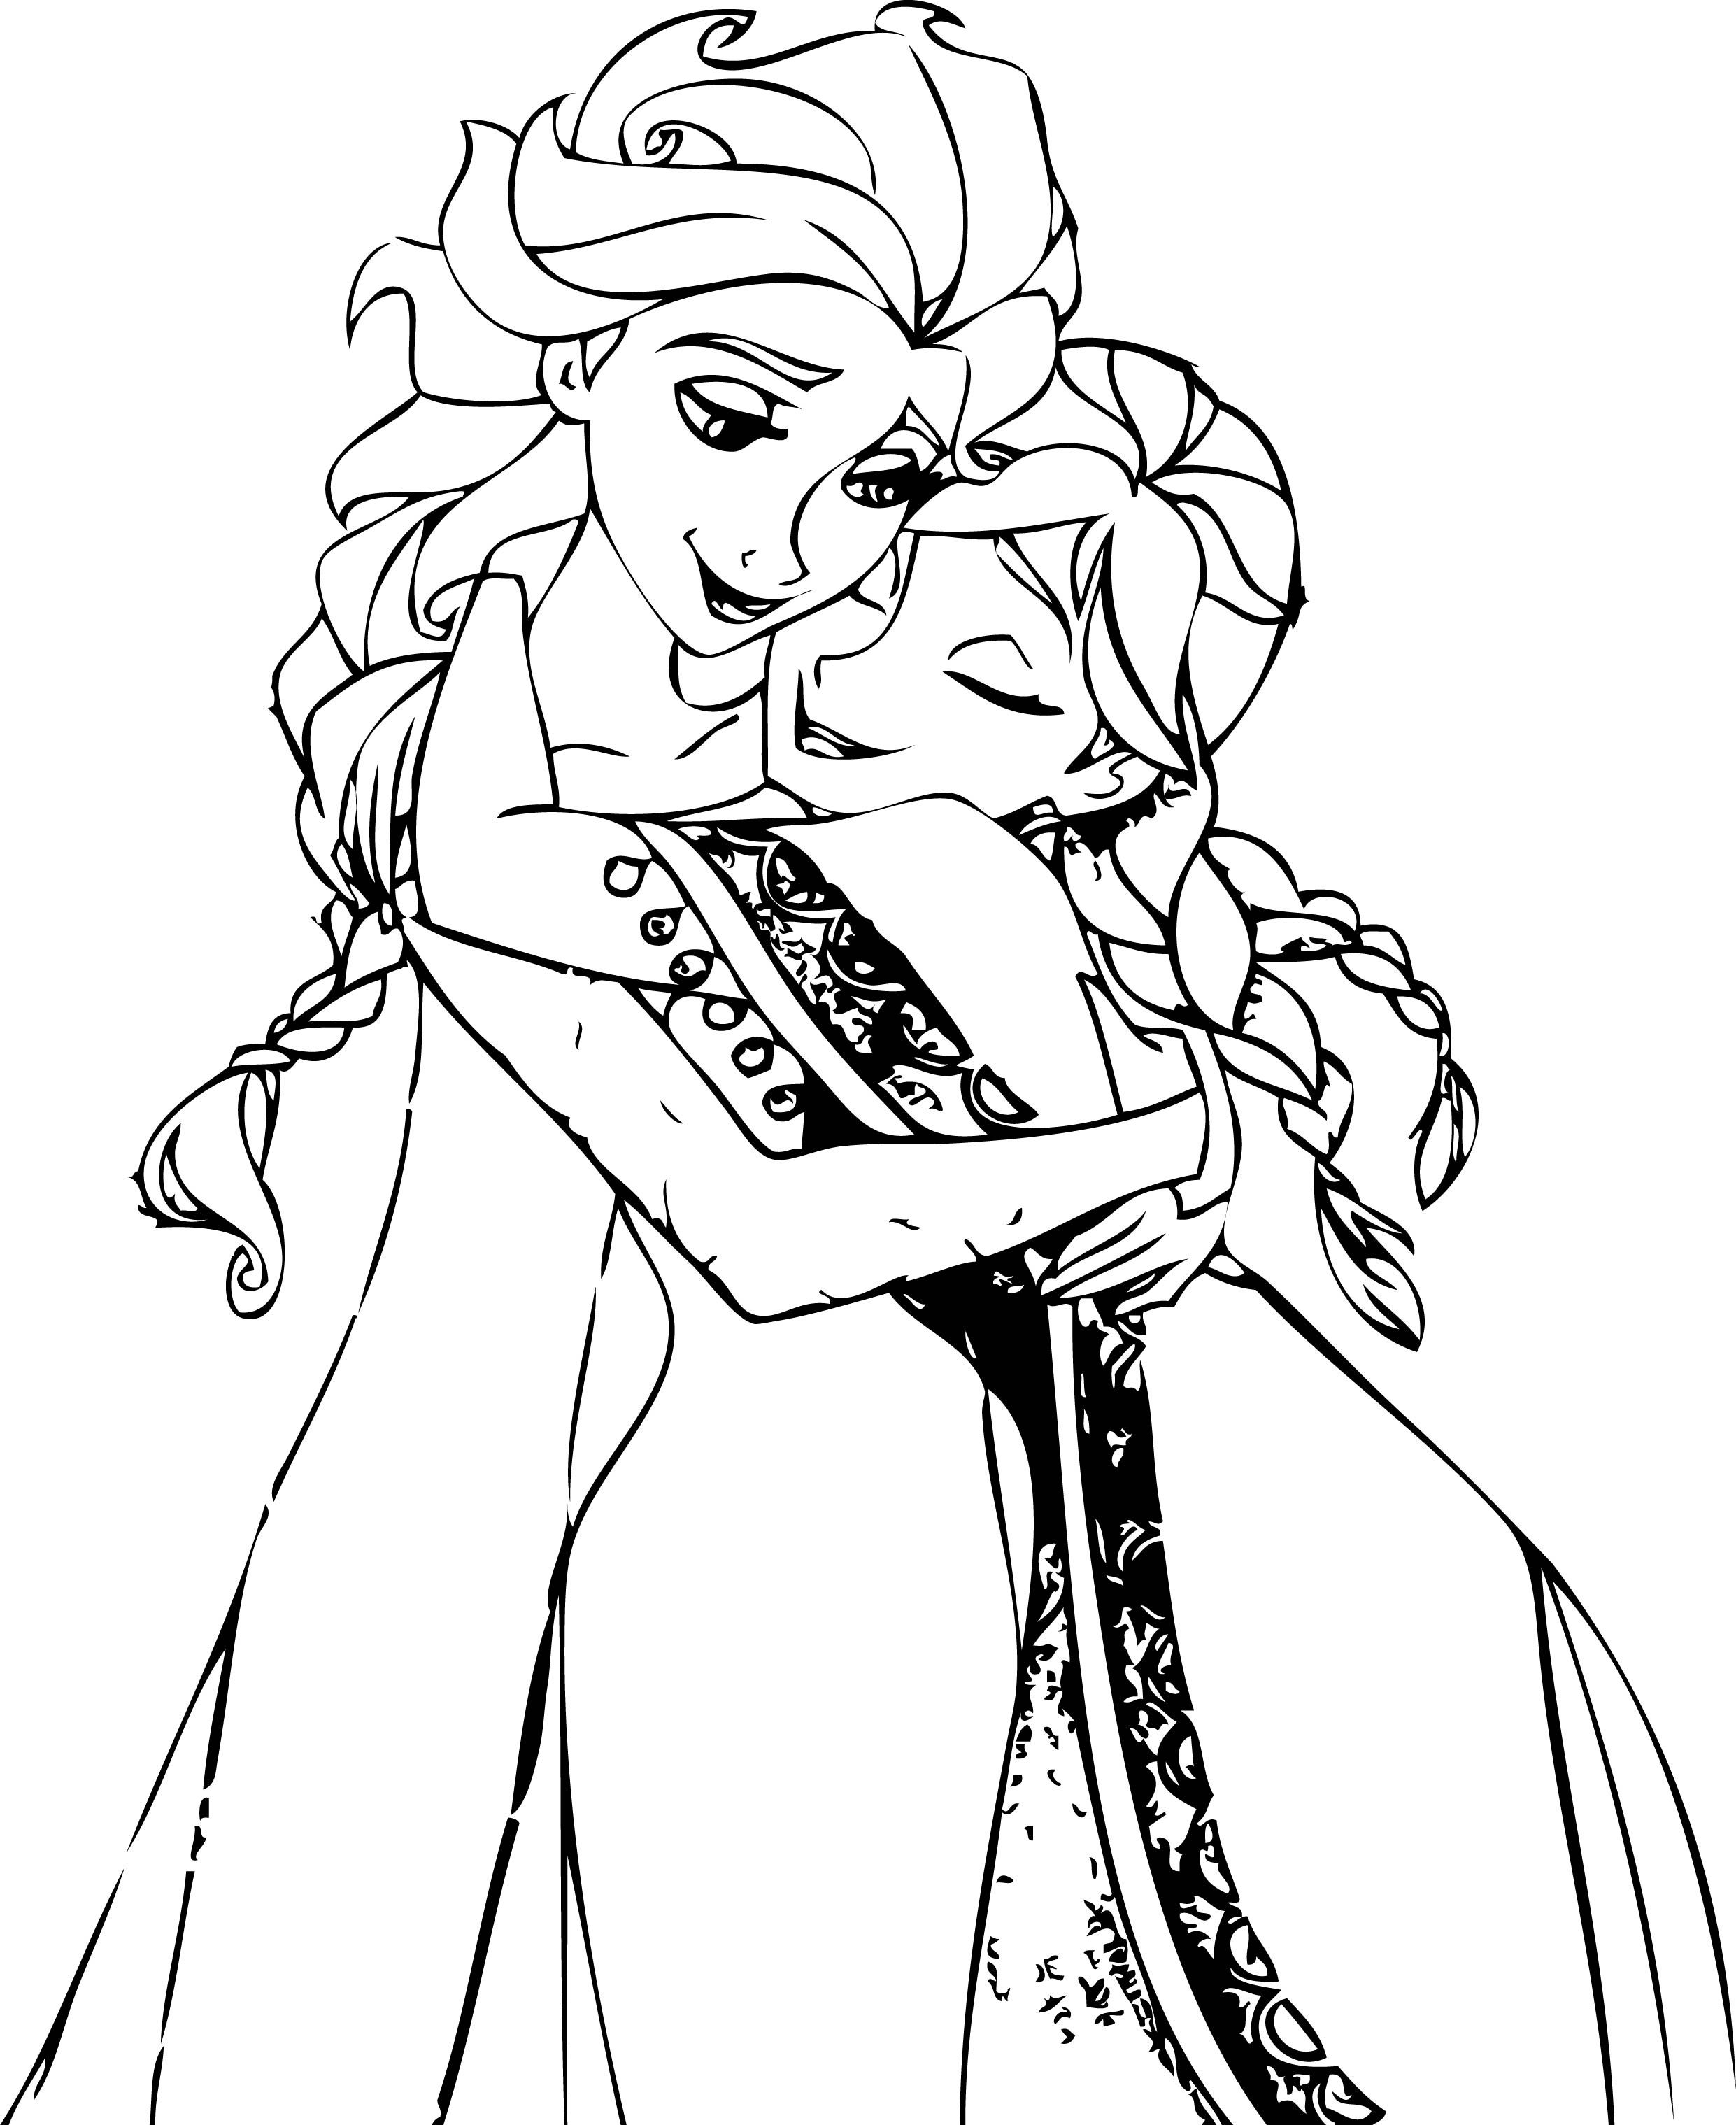 free coloring pages elsa and anna elsa and anna coloring pages coloring home free pages elsa coloring anna and